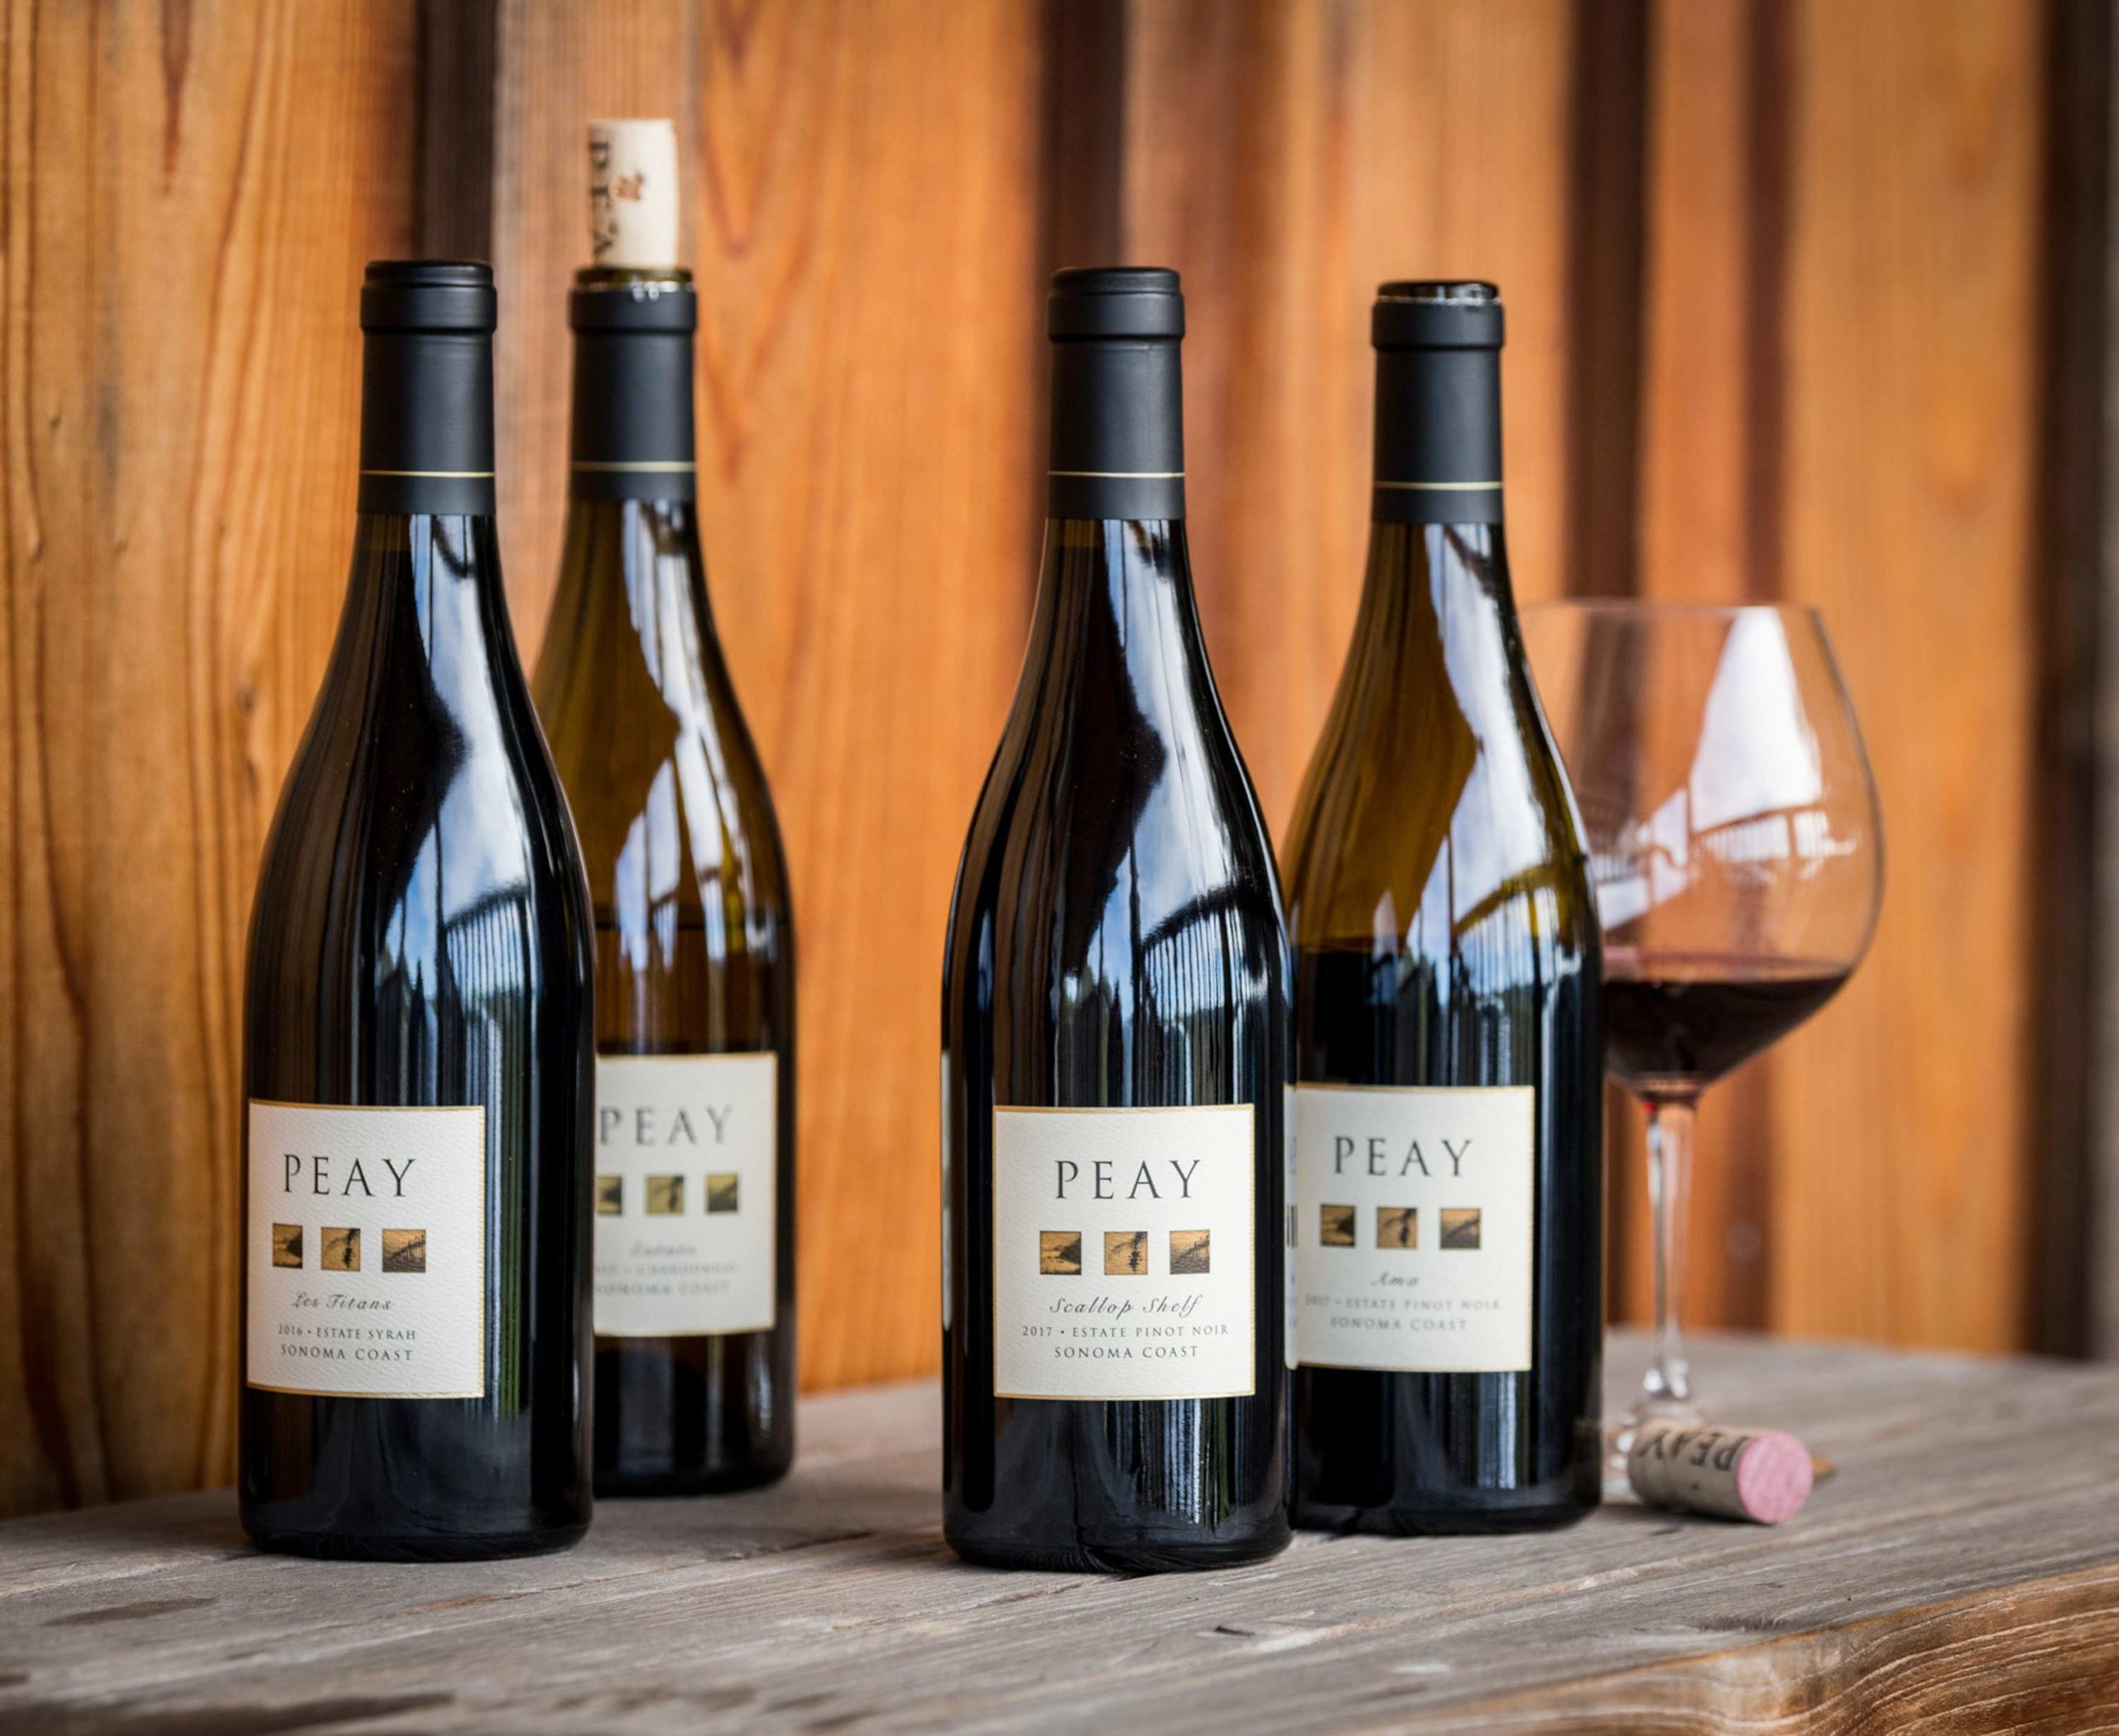 Featured image for Article: 2018 Peay Vineyards Scallop Shelf Estate Pinot noir, Sonoma Coast